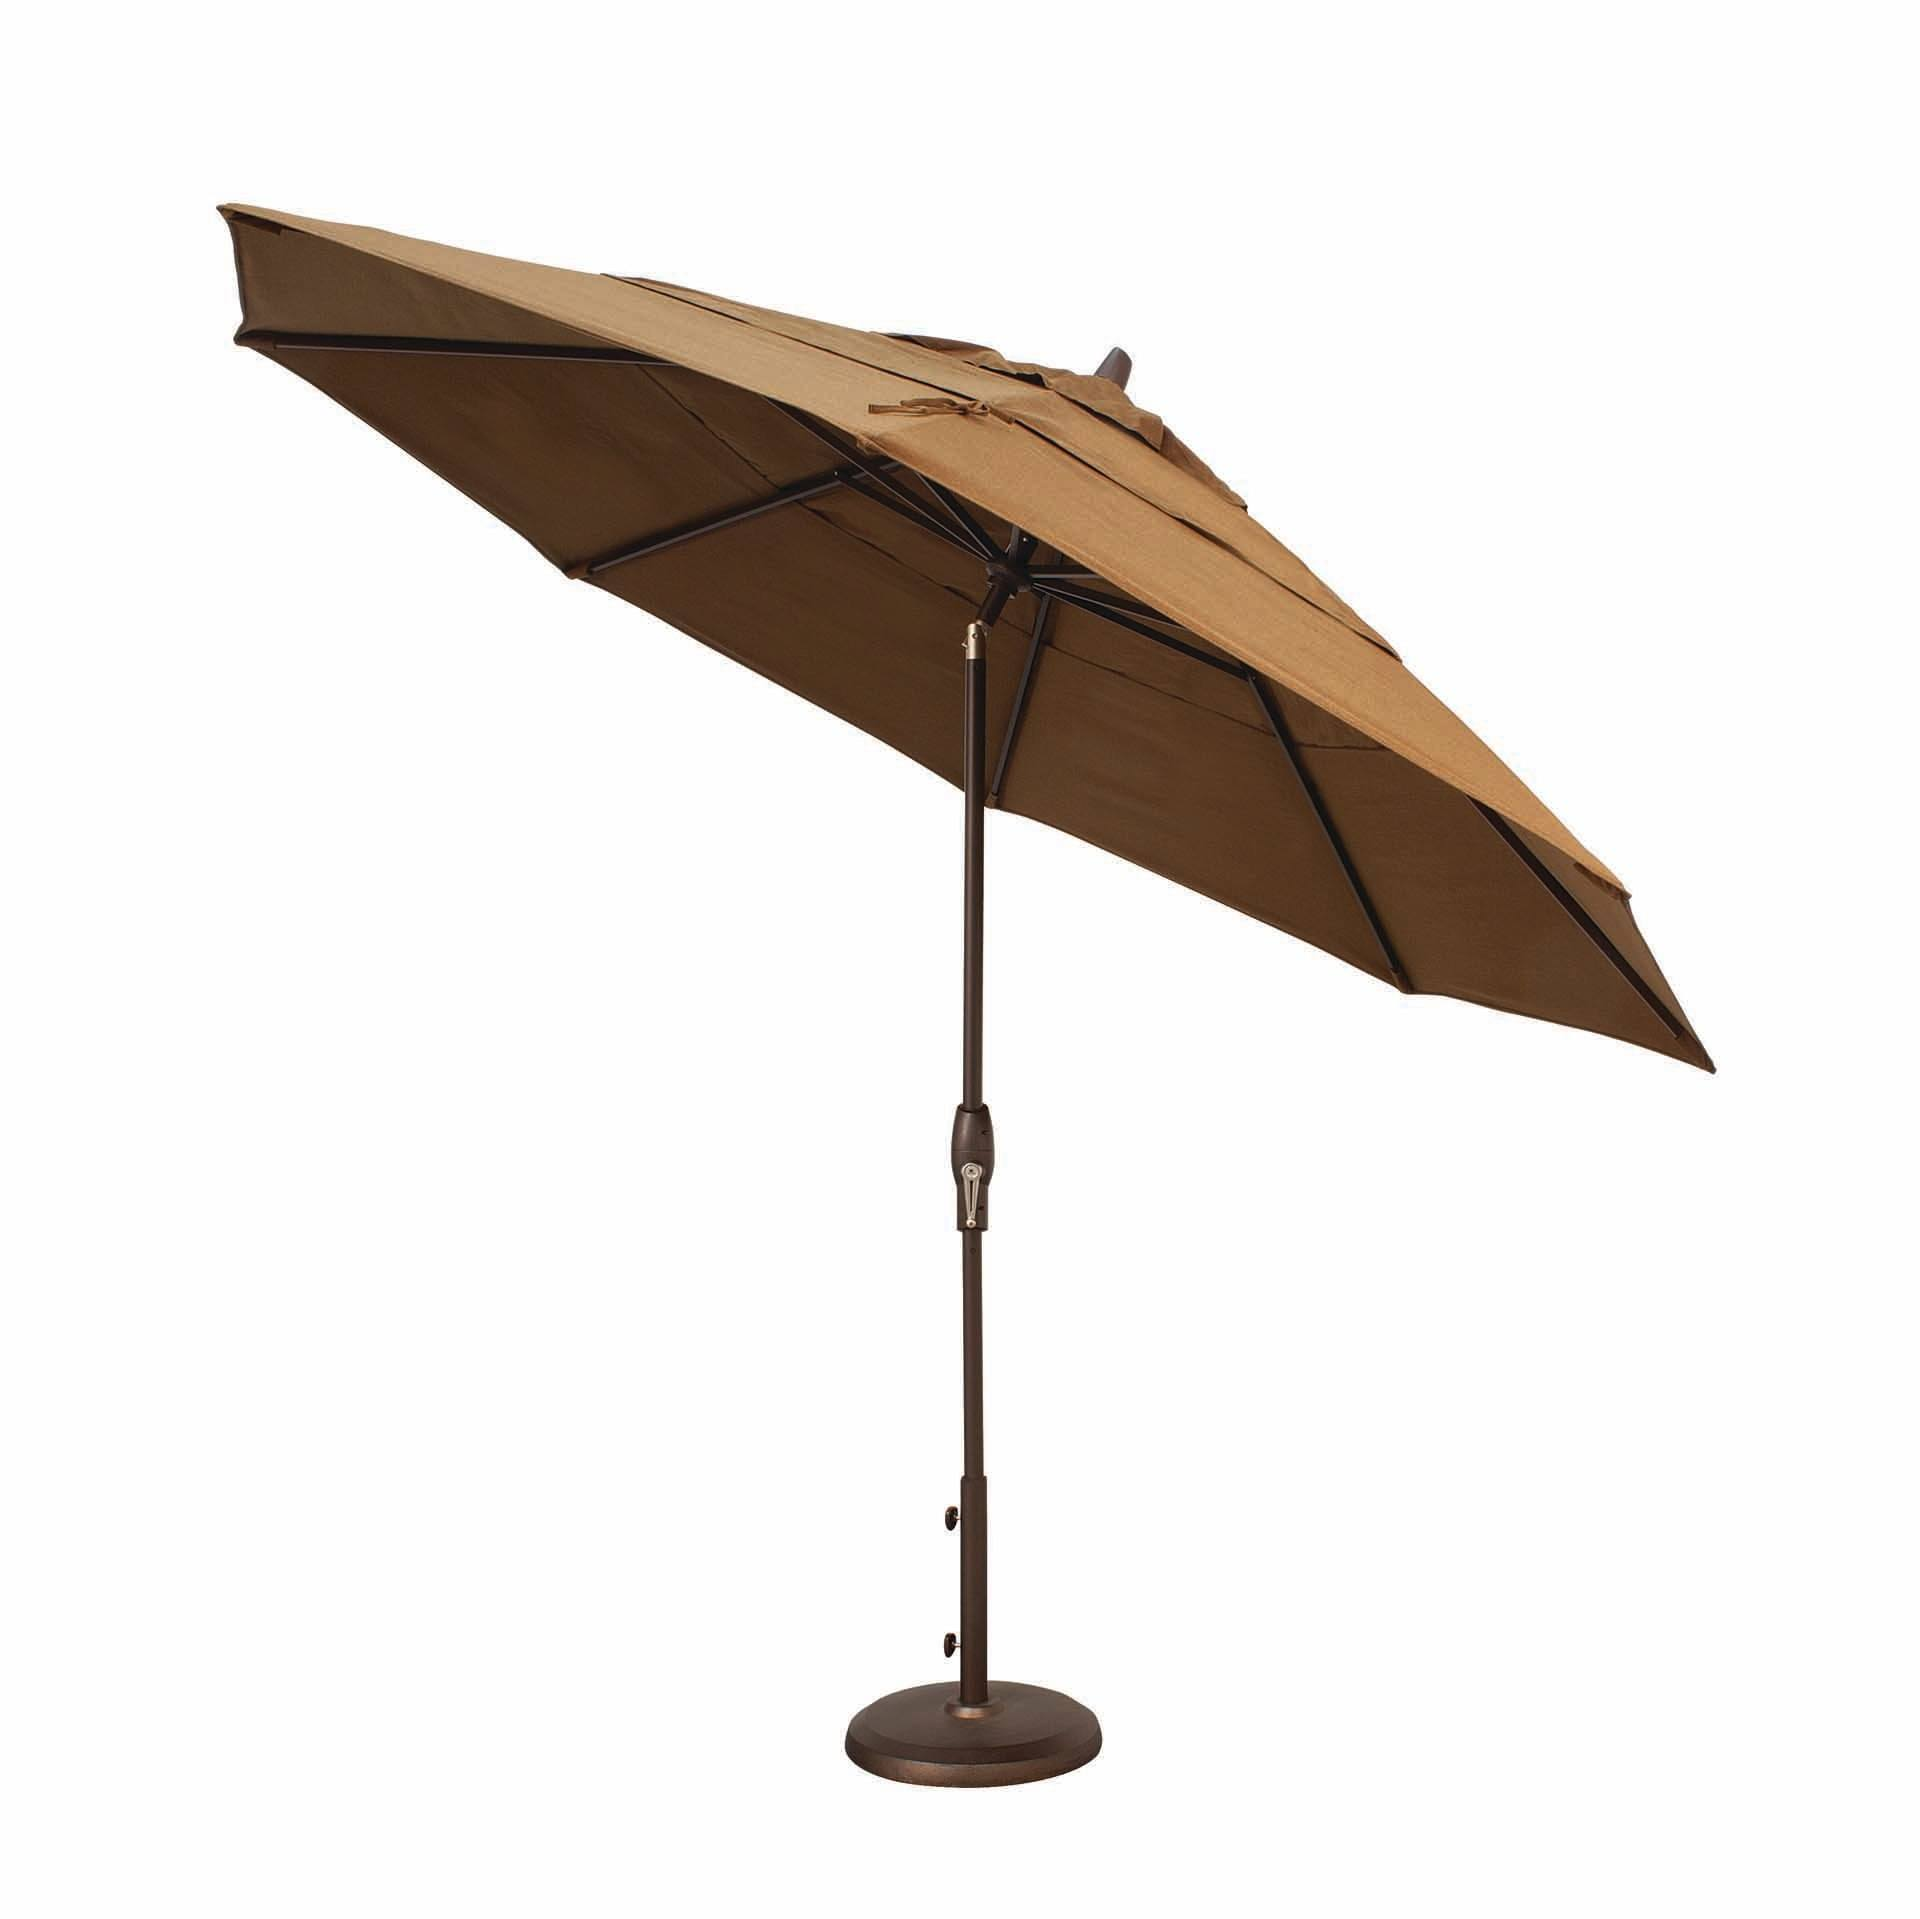 Treasure Garden 11 Auto Tilt Market Umbrella Leisure Living